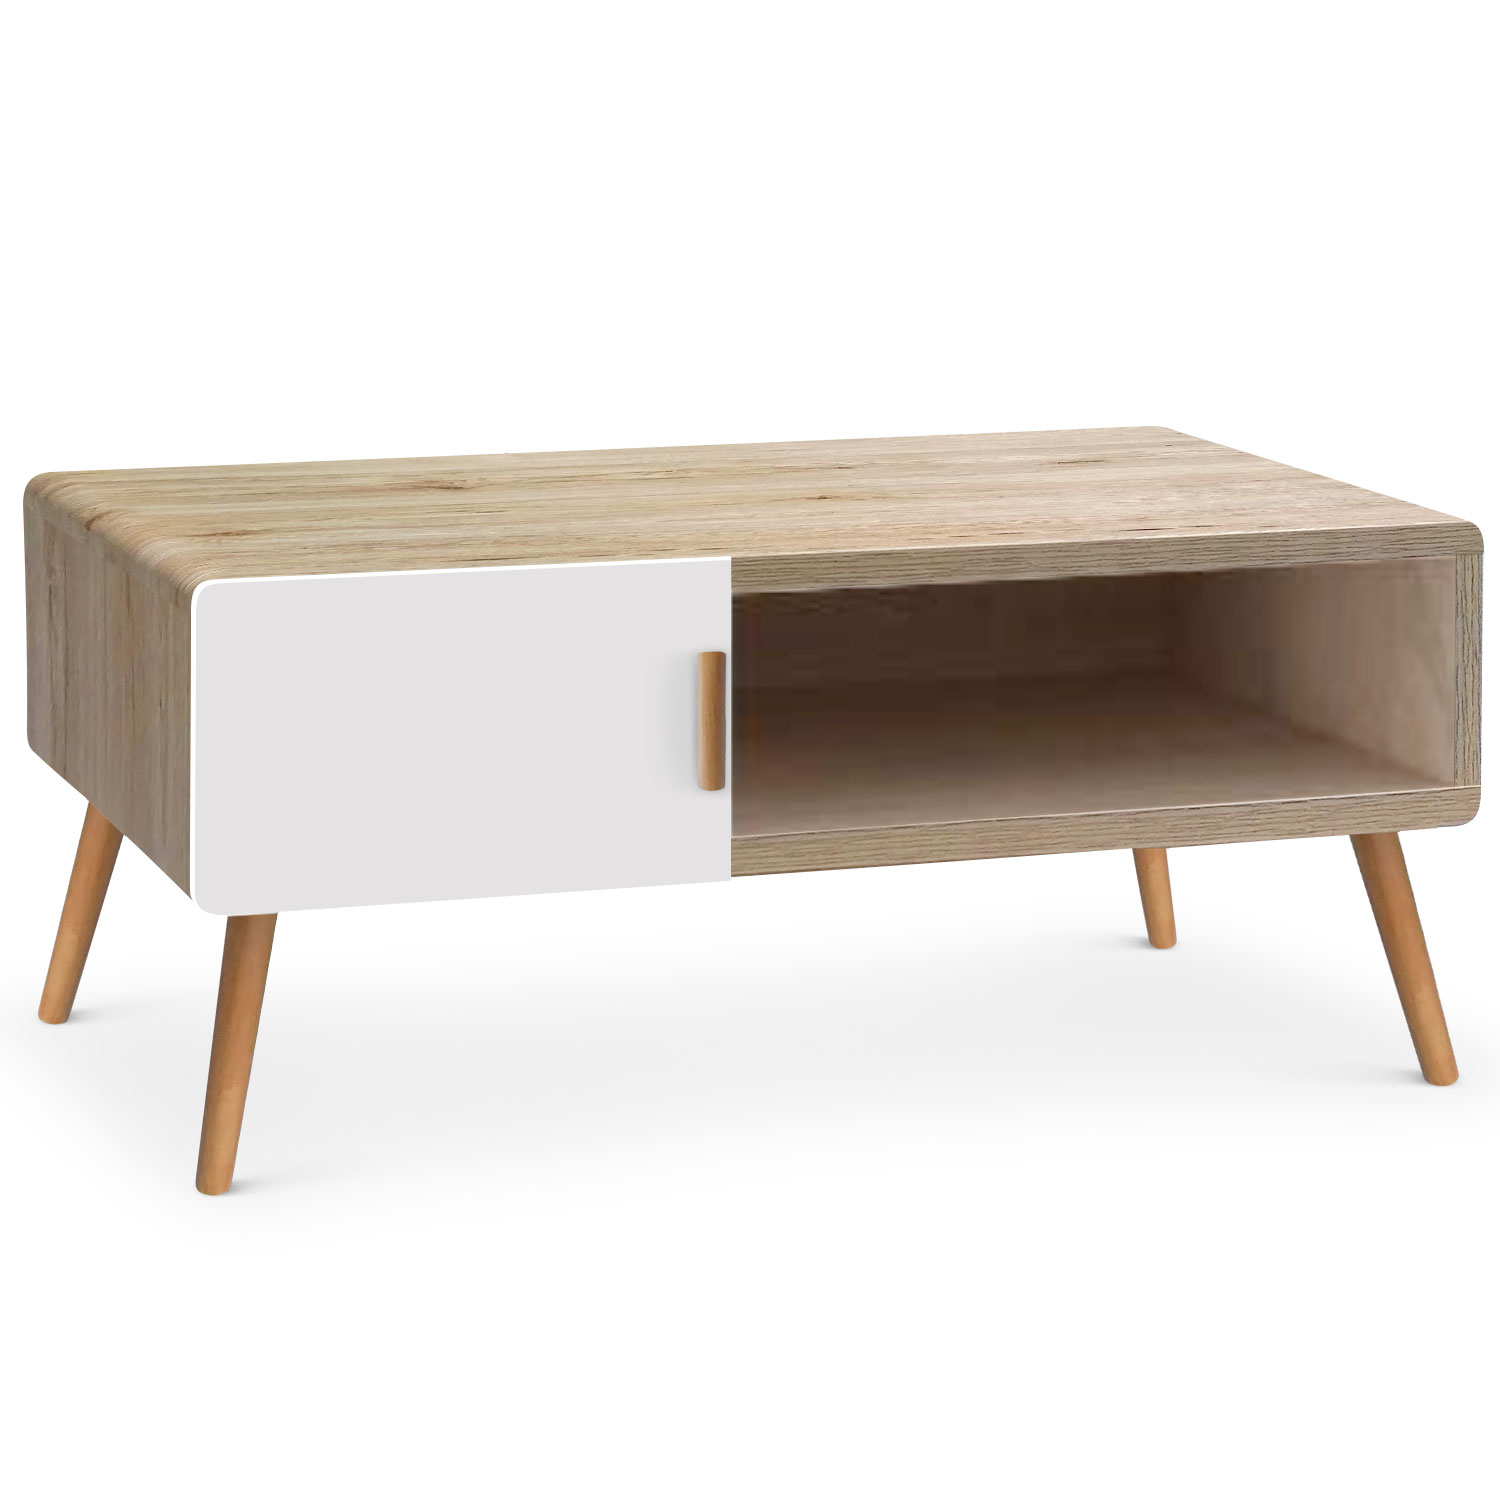 126 table basse pas chere design table basse table basse for Table basse kendra